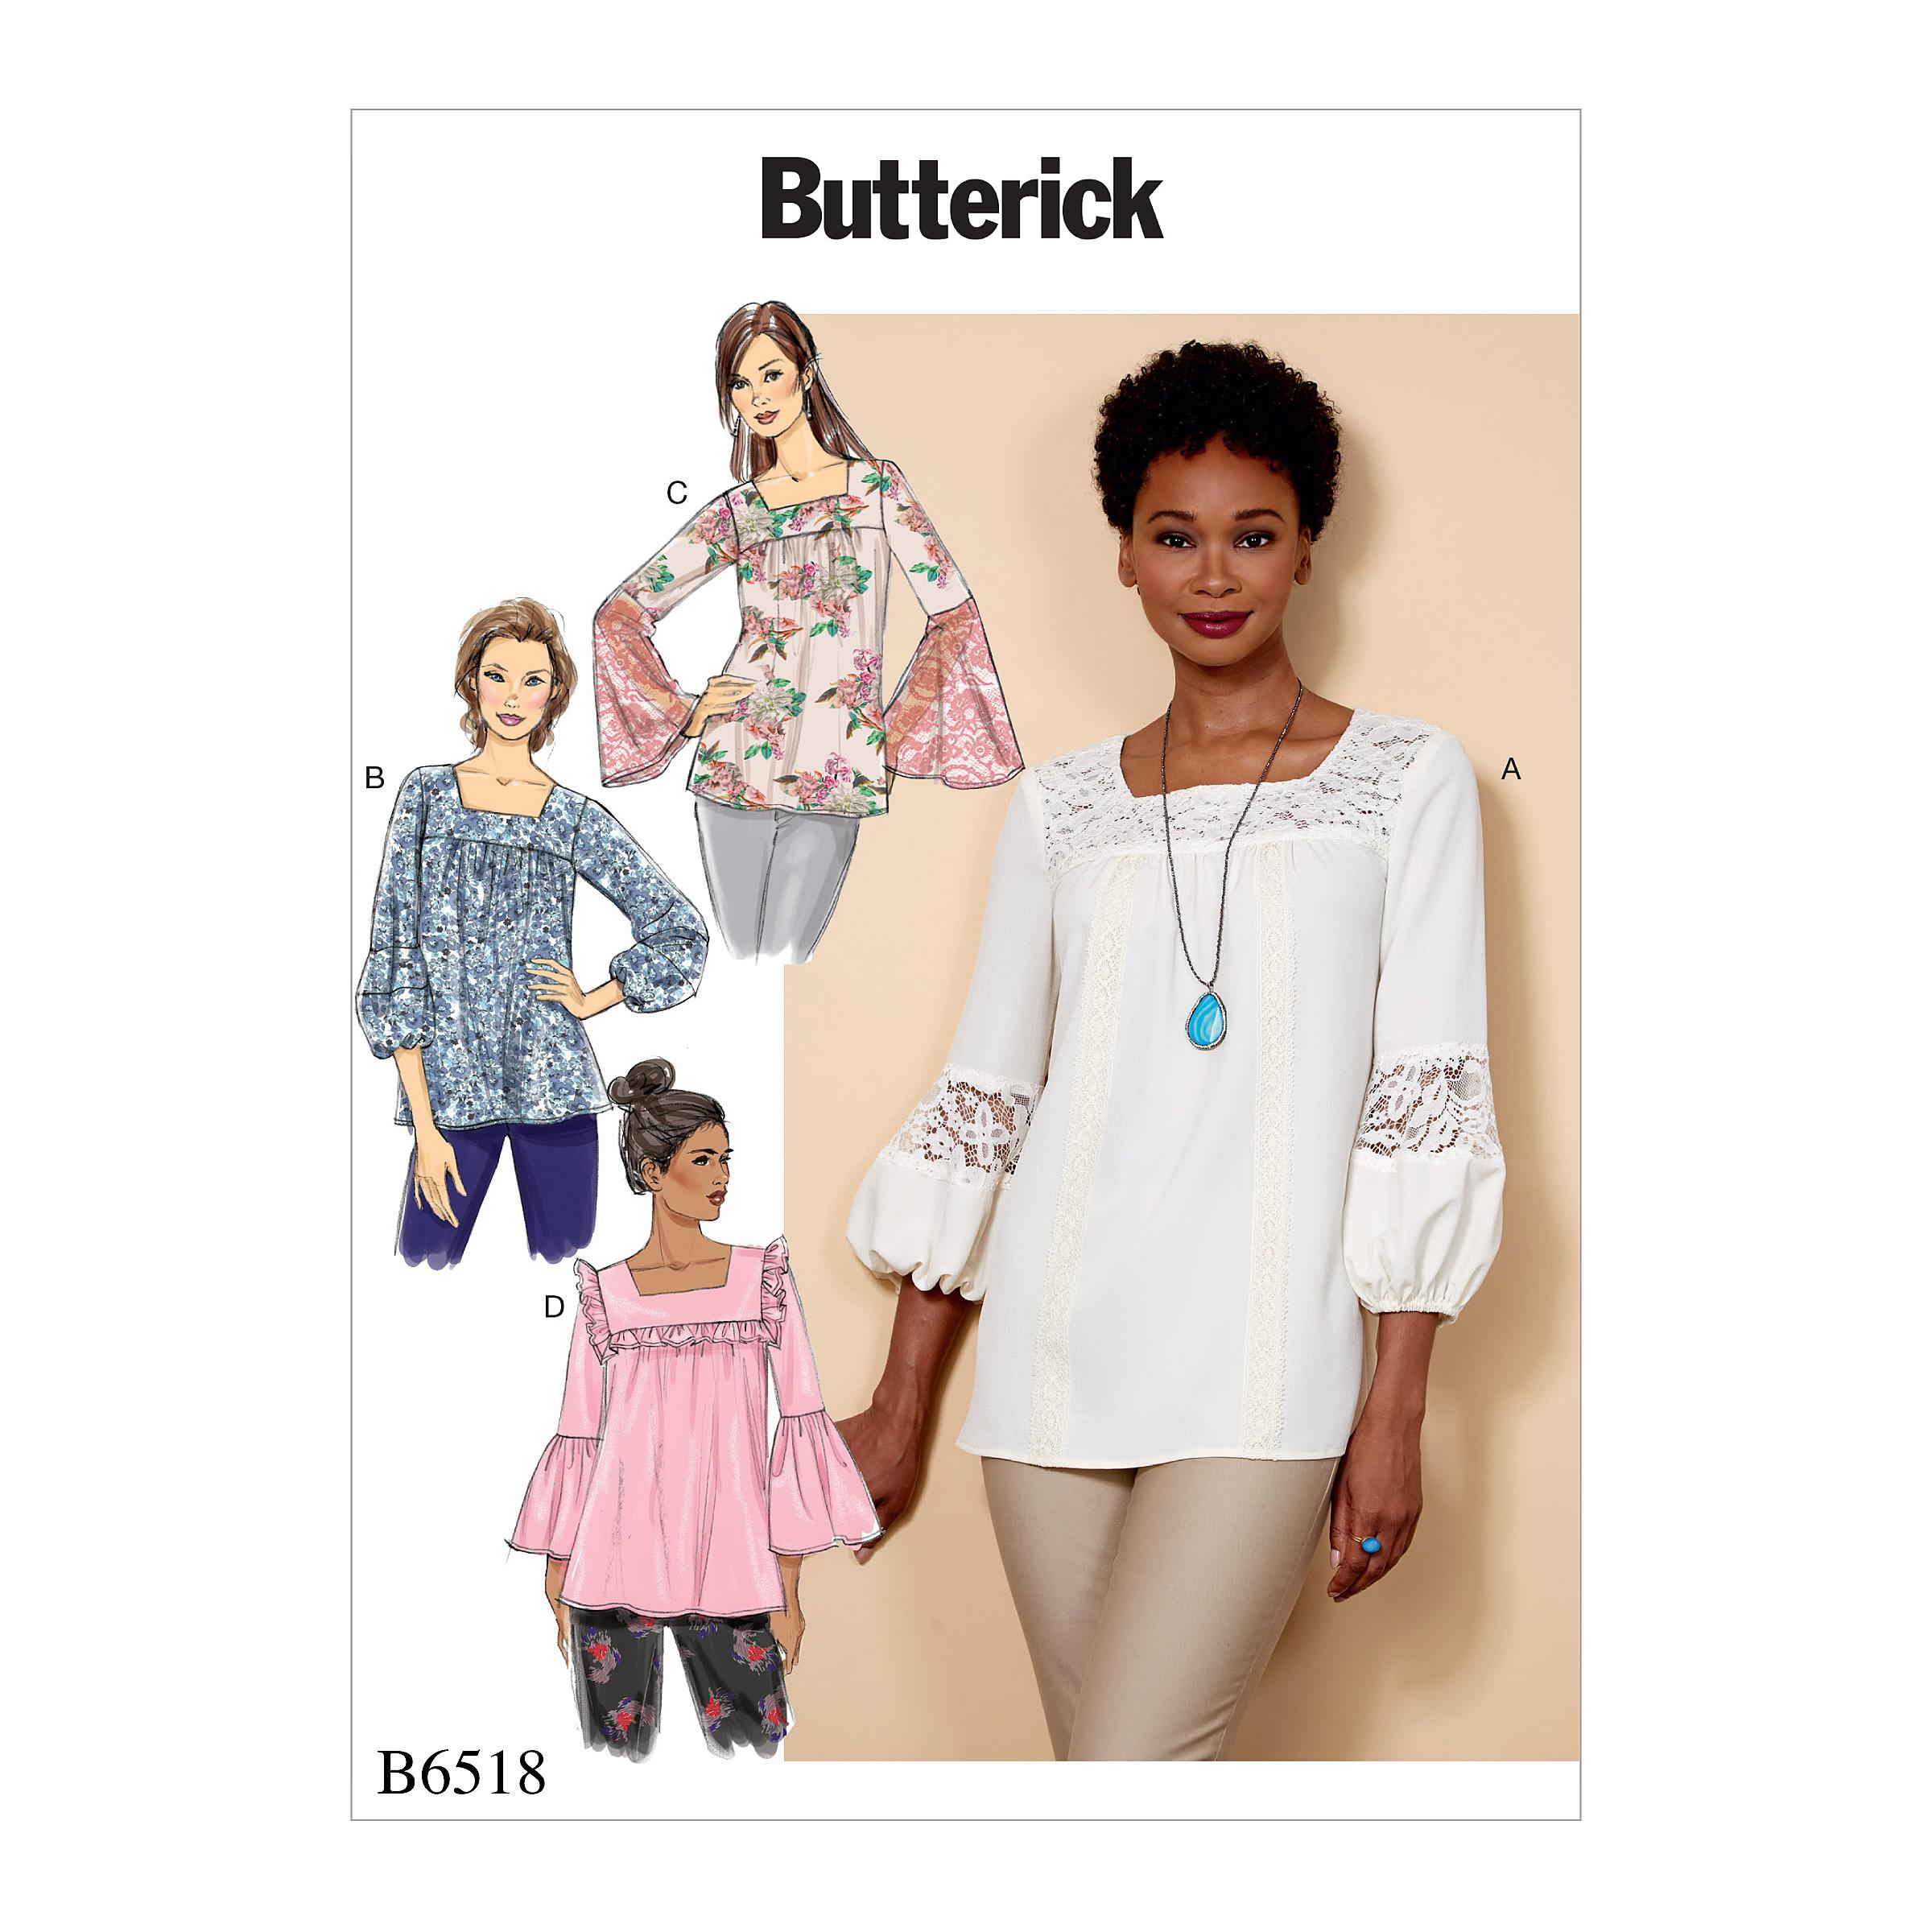 Butterick B6518 Misses' Square-Neck Top with Yoke